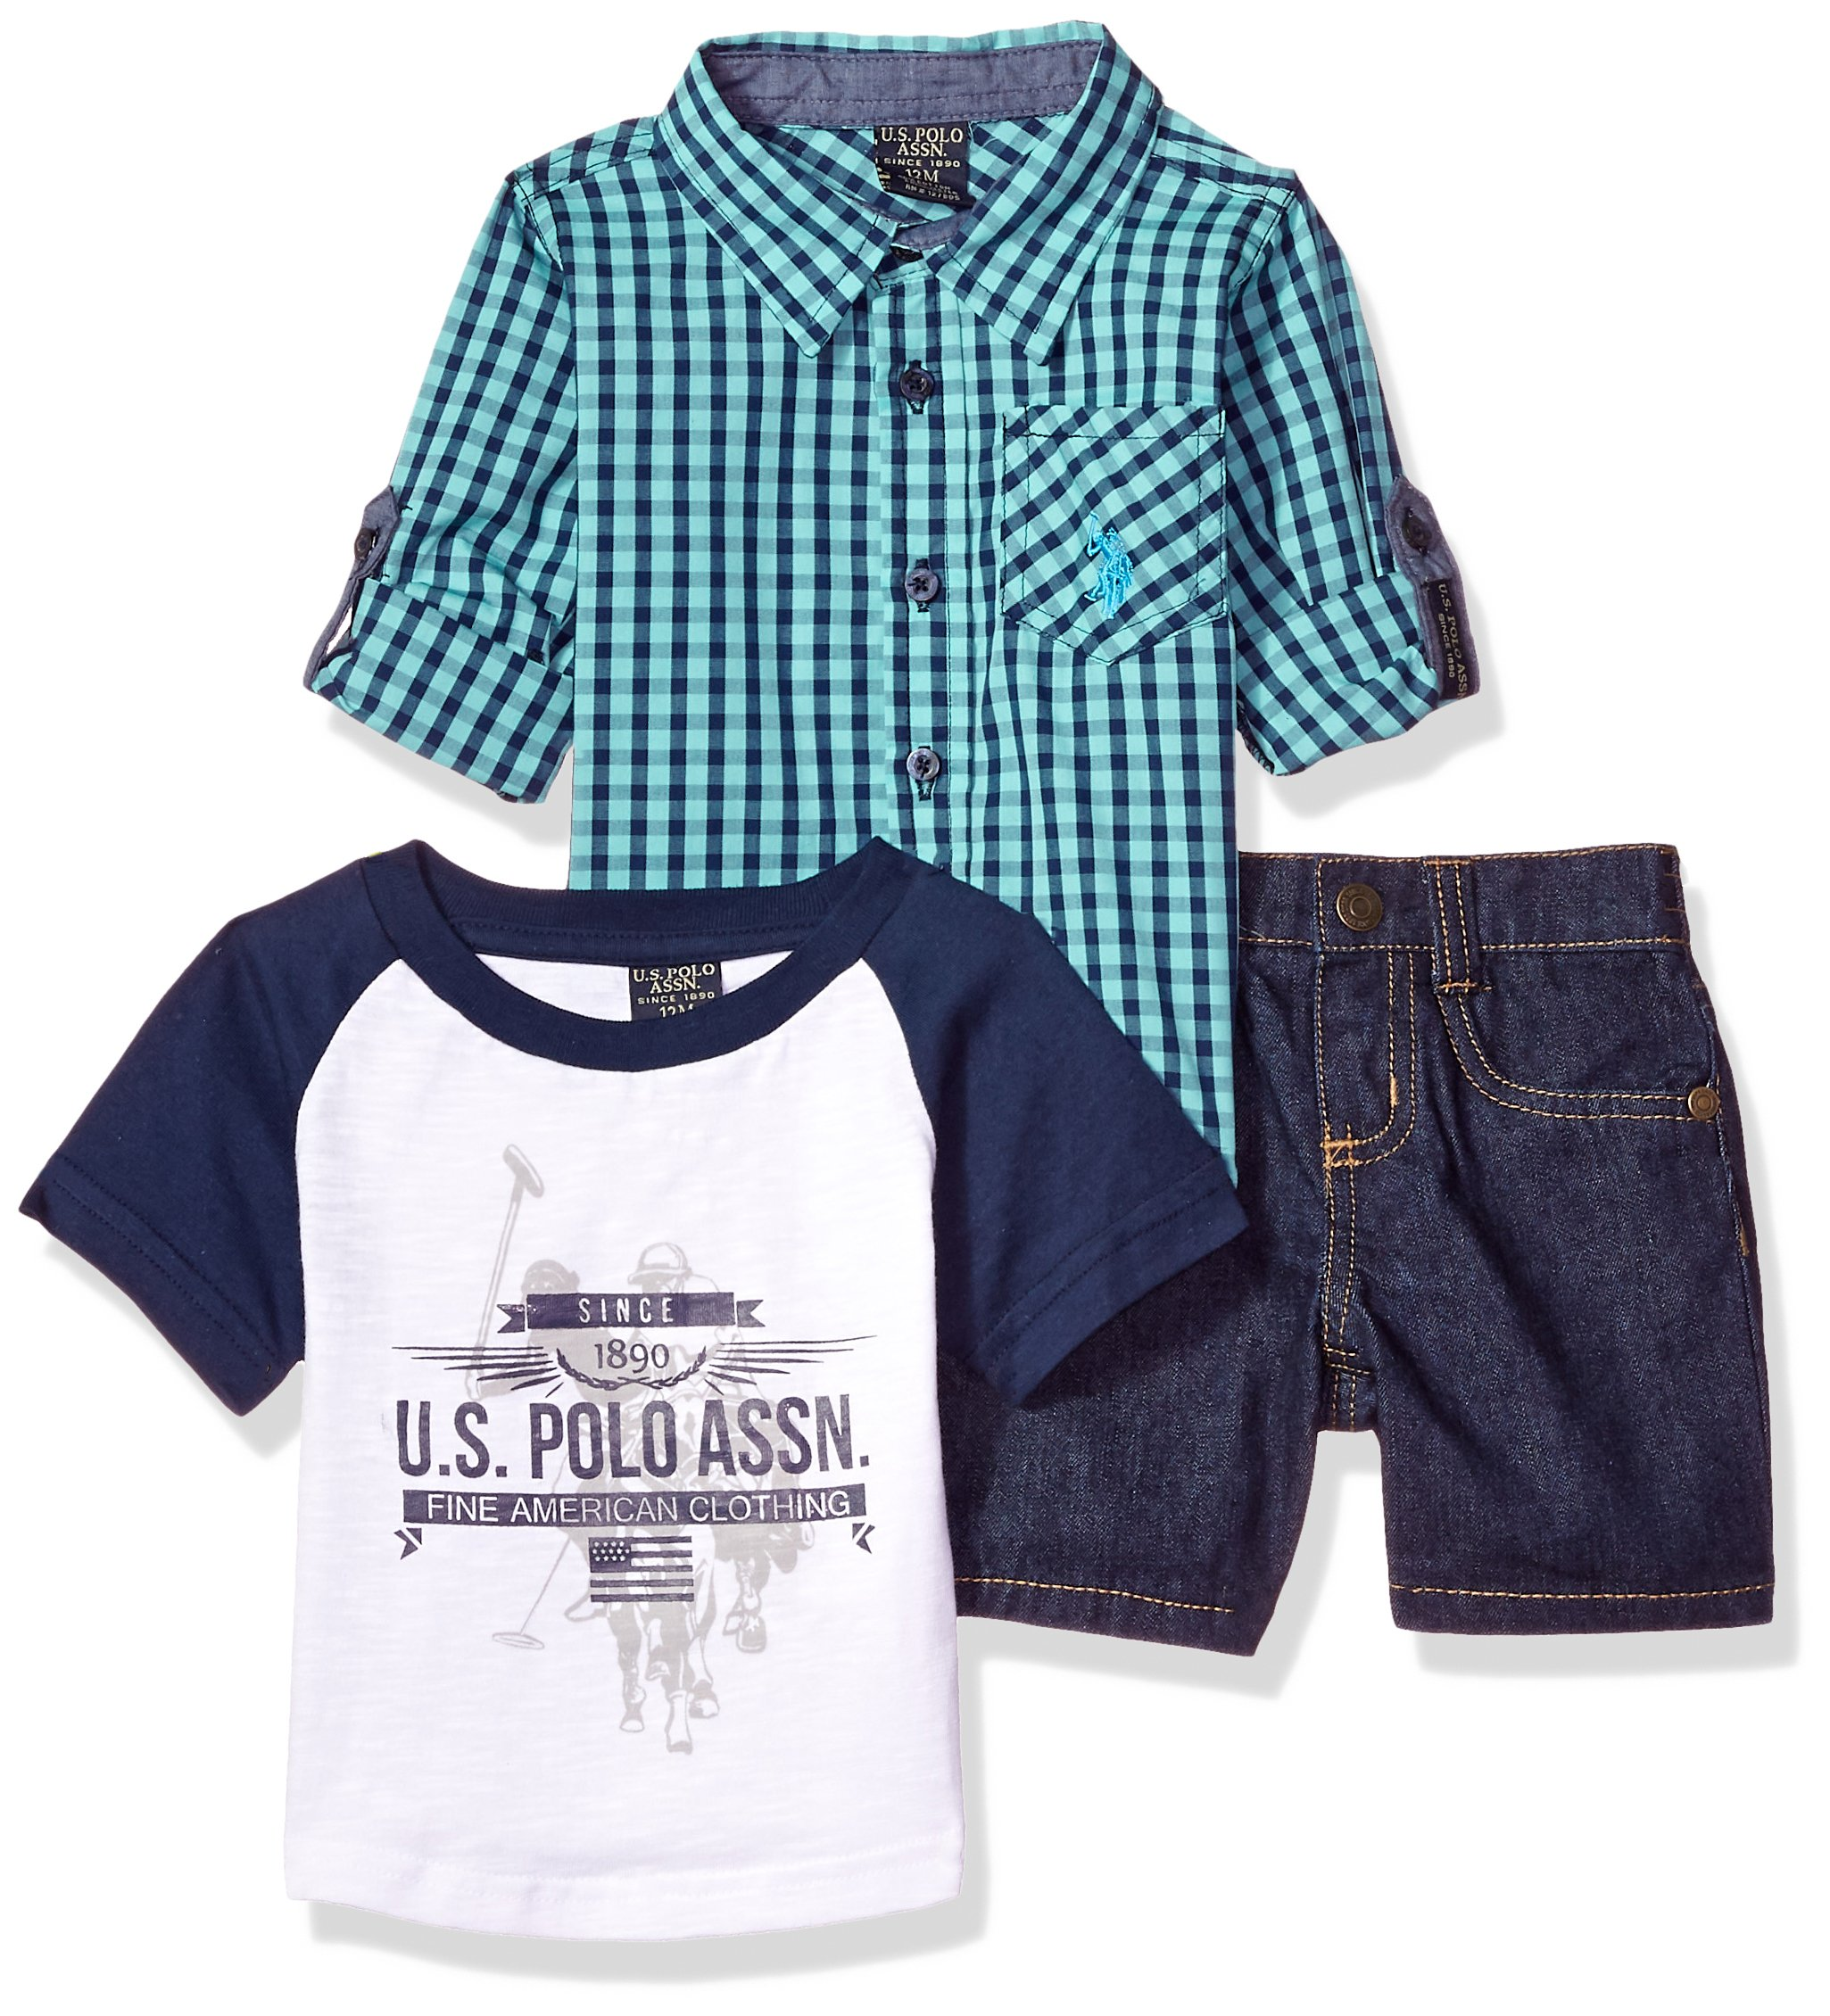 U.S. Polo Assn.. Baby Boys Long Sleeve Woven Shirt, T-Shirt and Short Set, Printed Fine American Clothing Multi Plaid, 12M by U.S. Polo Assn. (Image #1)